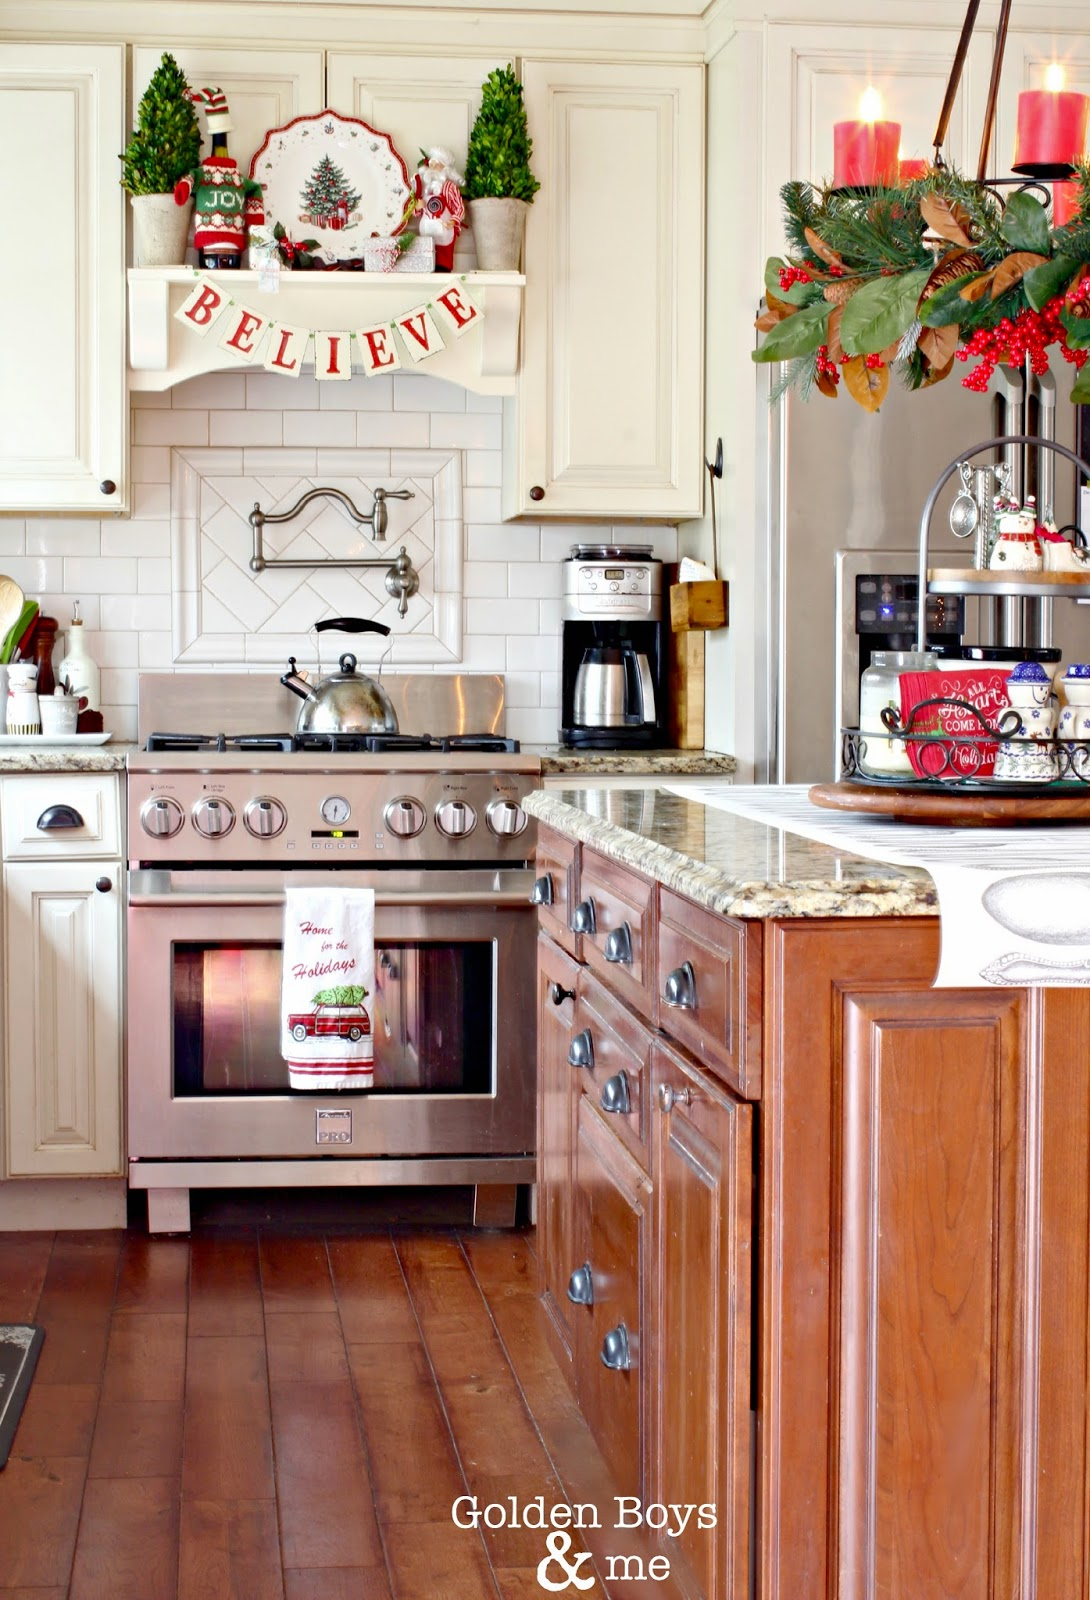 Golden Boys and Me: Christmas in the Kitchen